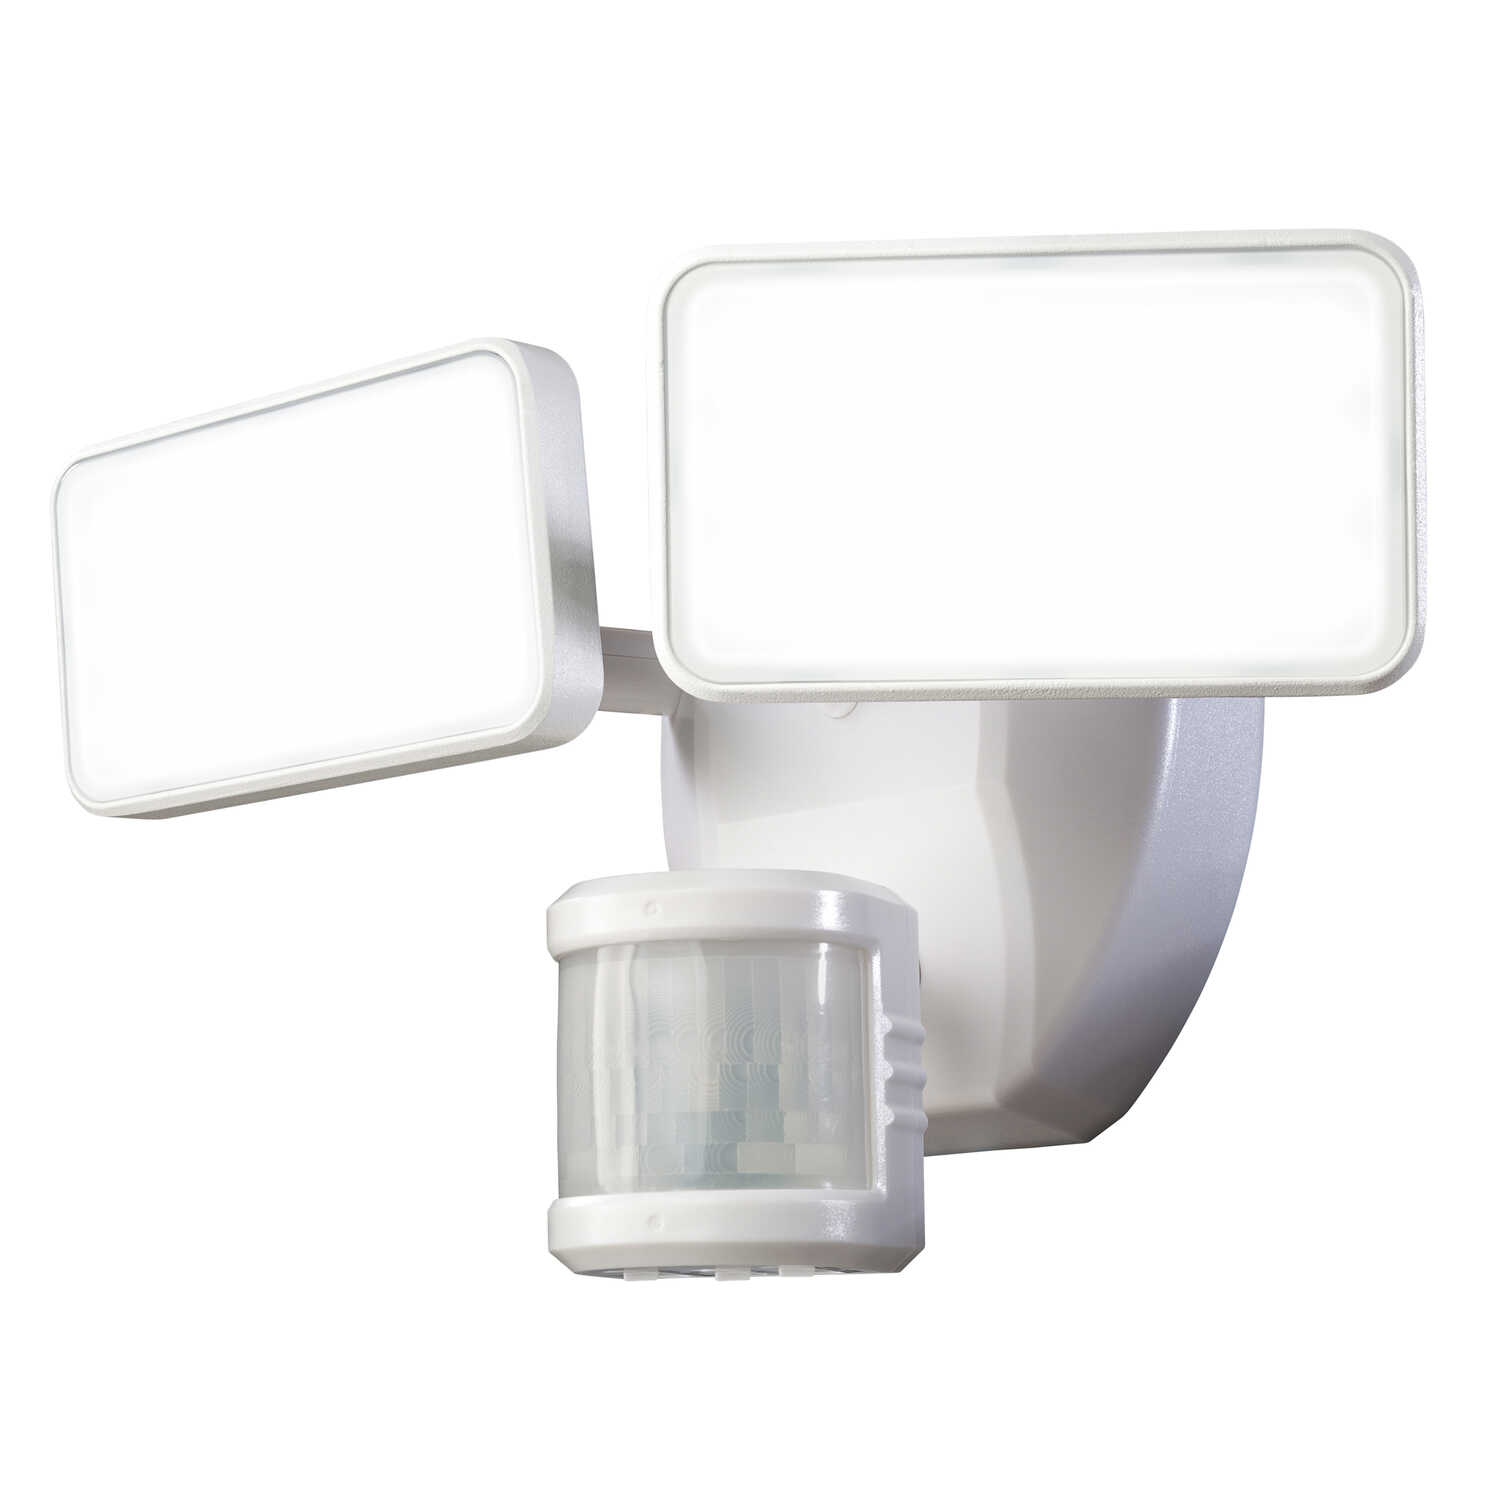 Heathco  Hardwired  LED  Plastic  Security Wall Light  Motion-Sensing  White